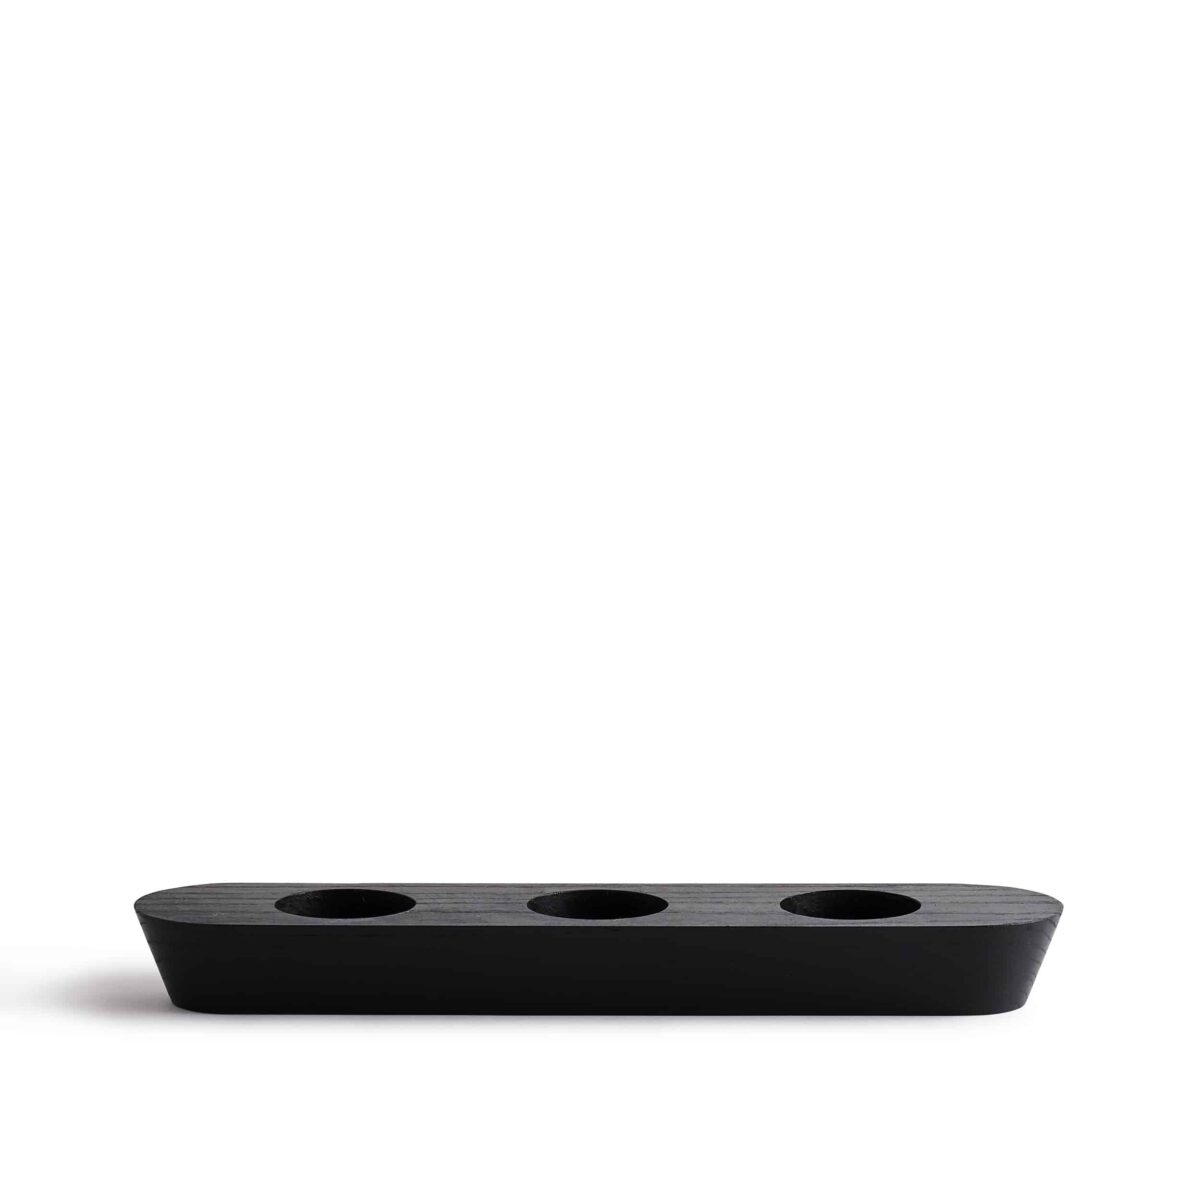 Tealight Holder Black-Another-Country-Photo Credit Yeshen Venema-web ready -21.11.185305